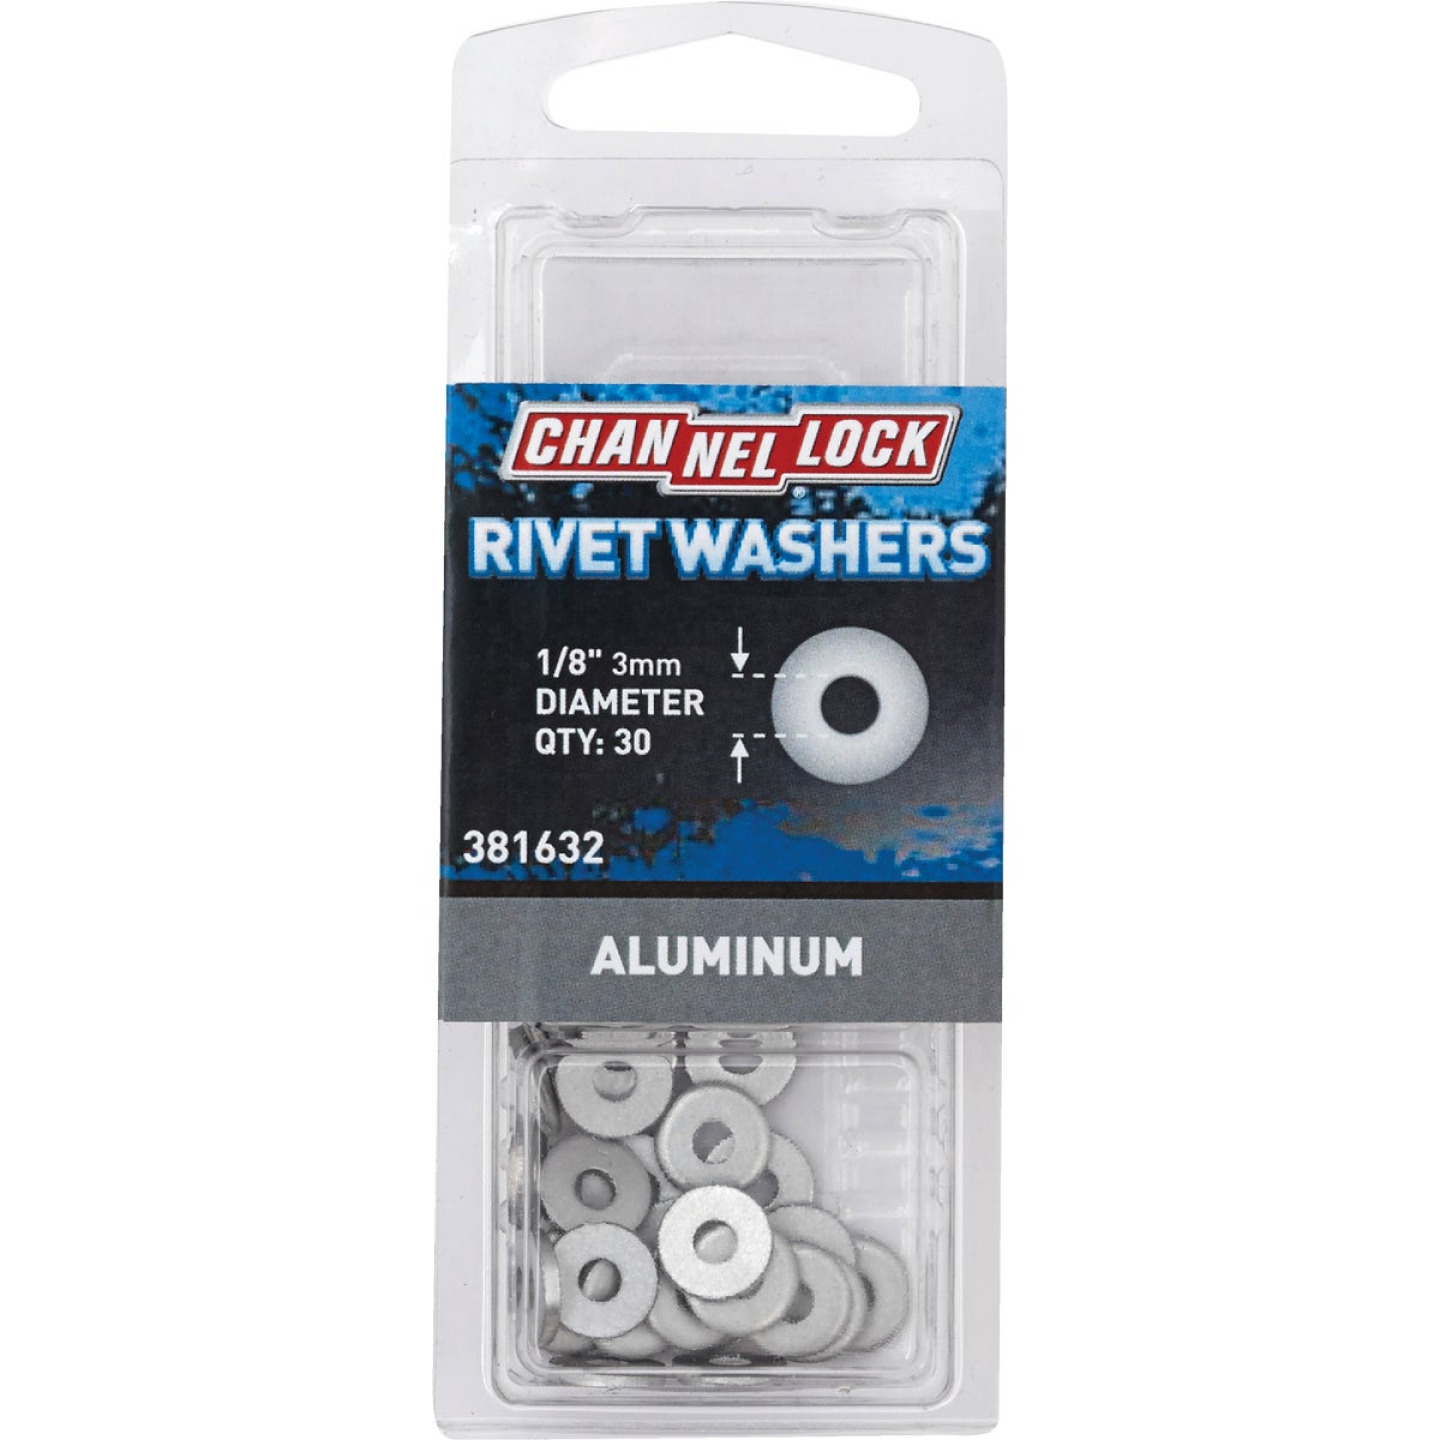 Channellock 1/8 in. Aluminum Rivet Washer (30-Pack) Image 1